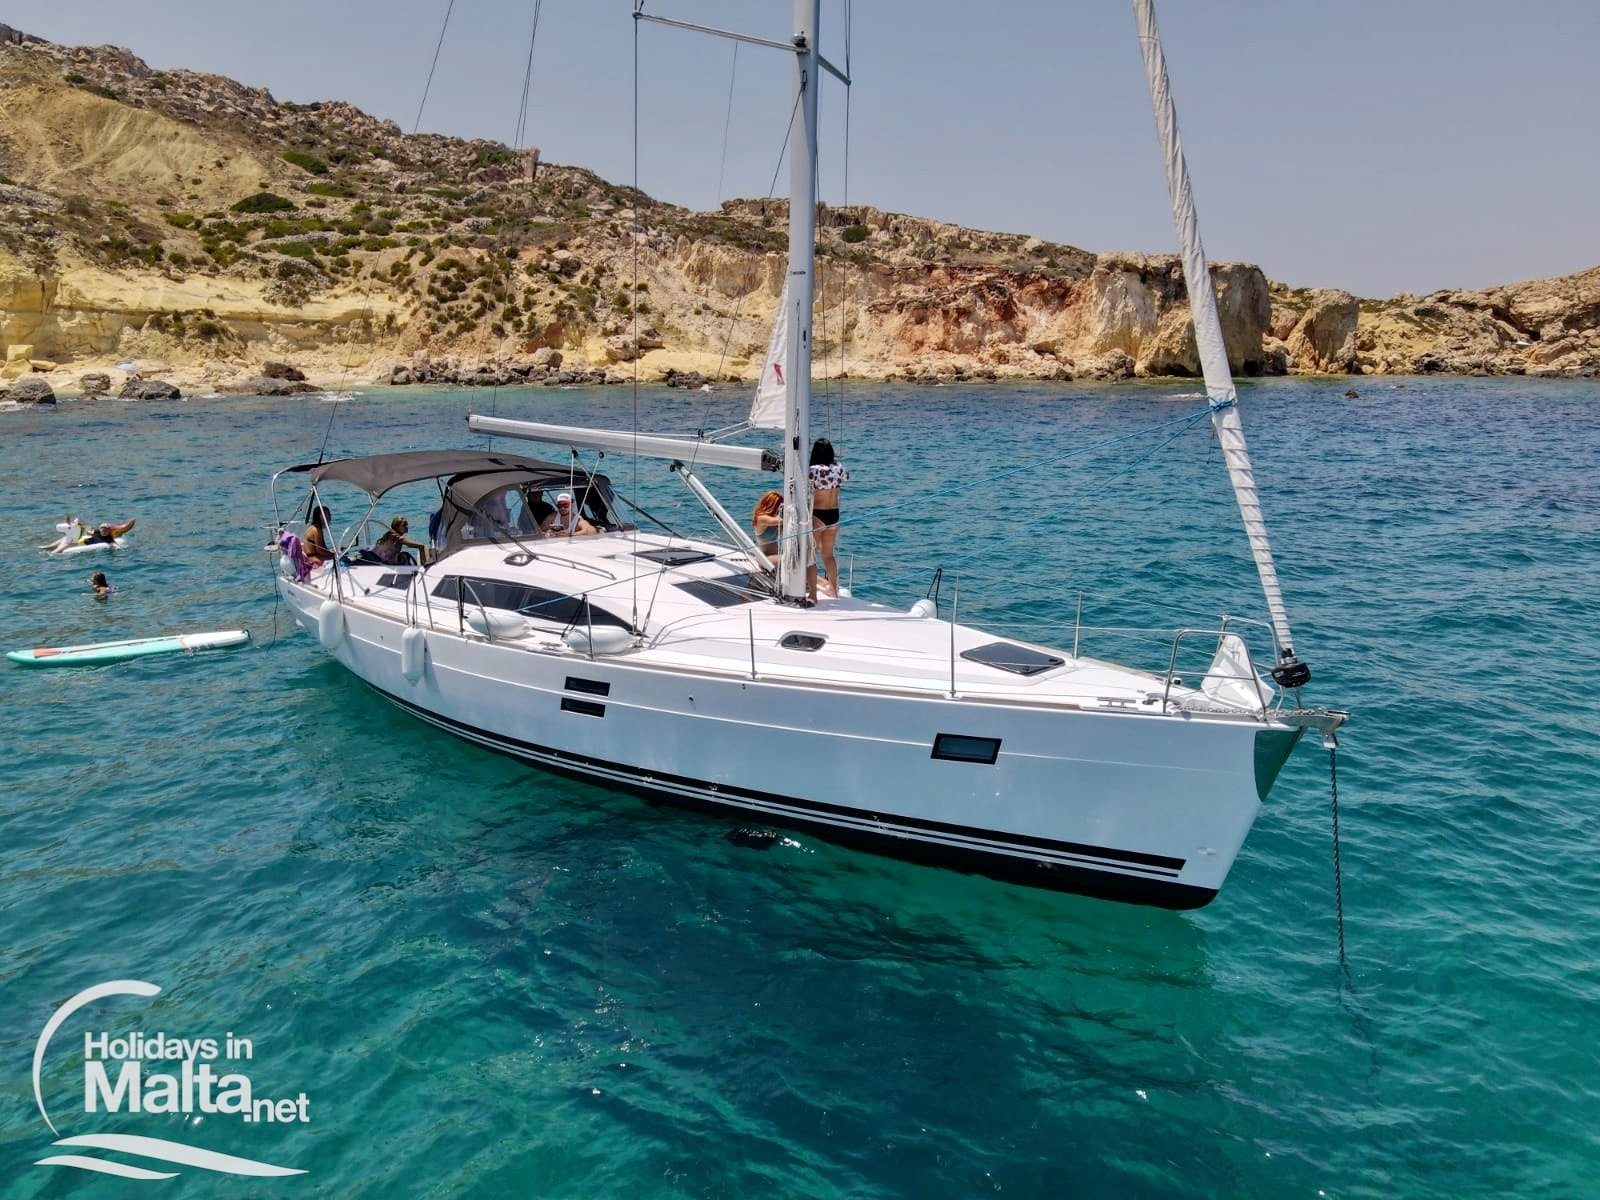 Sailing yacht with people on it in Selmun